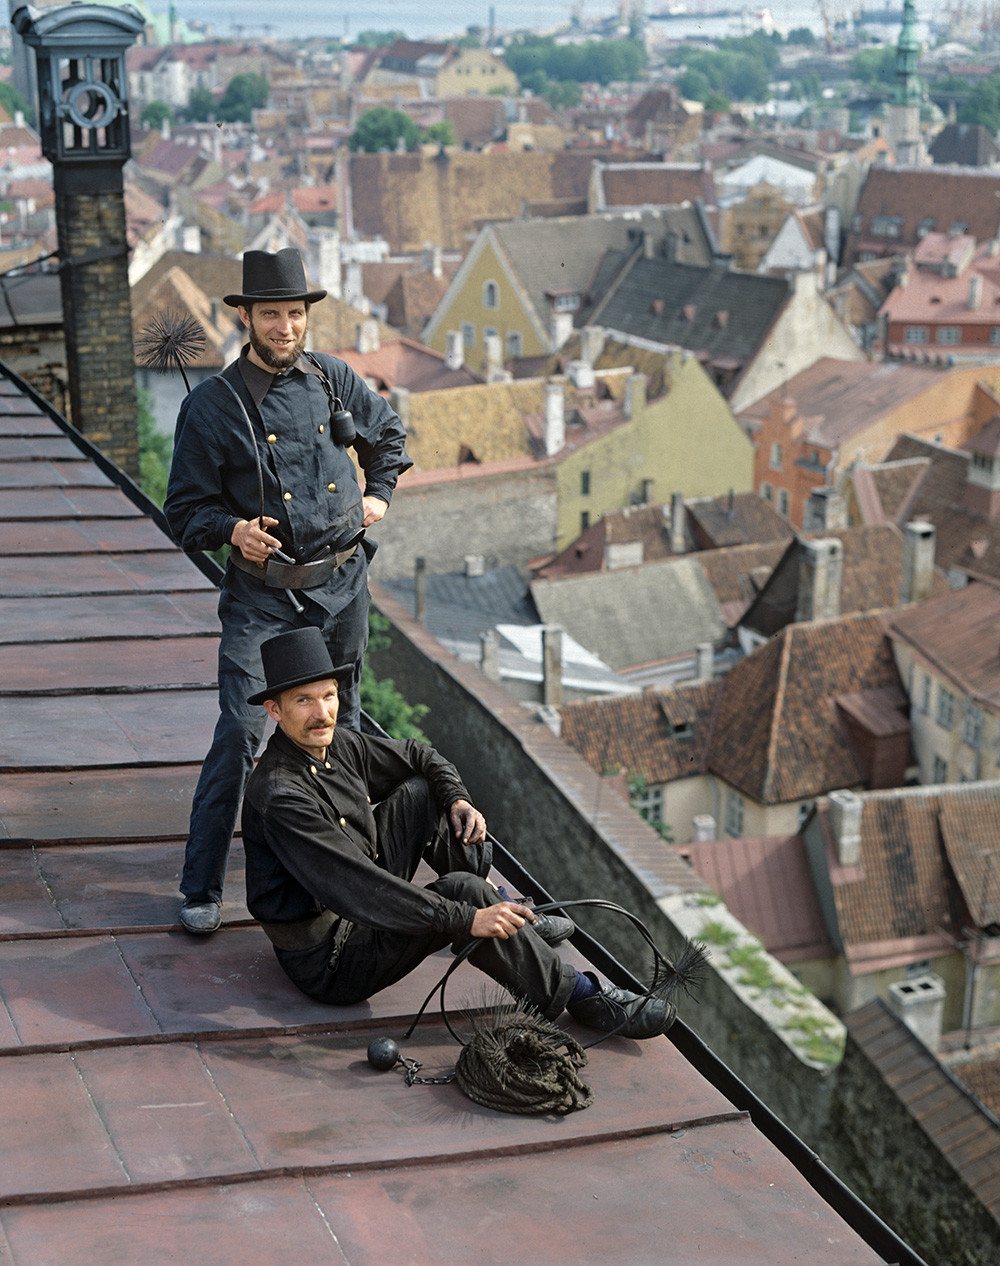 Chimney sweepers on a roof in Tallinn, 1984.